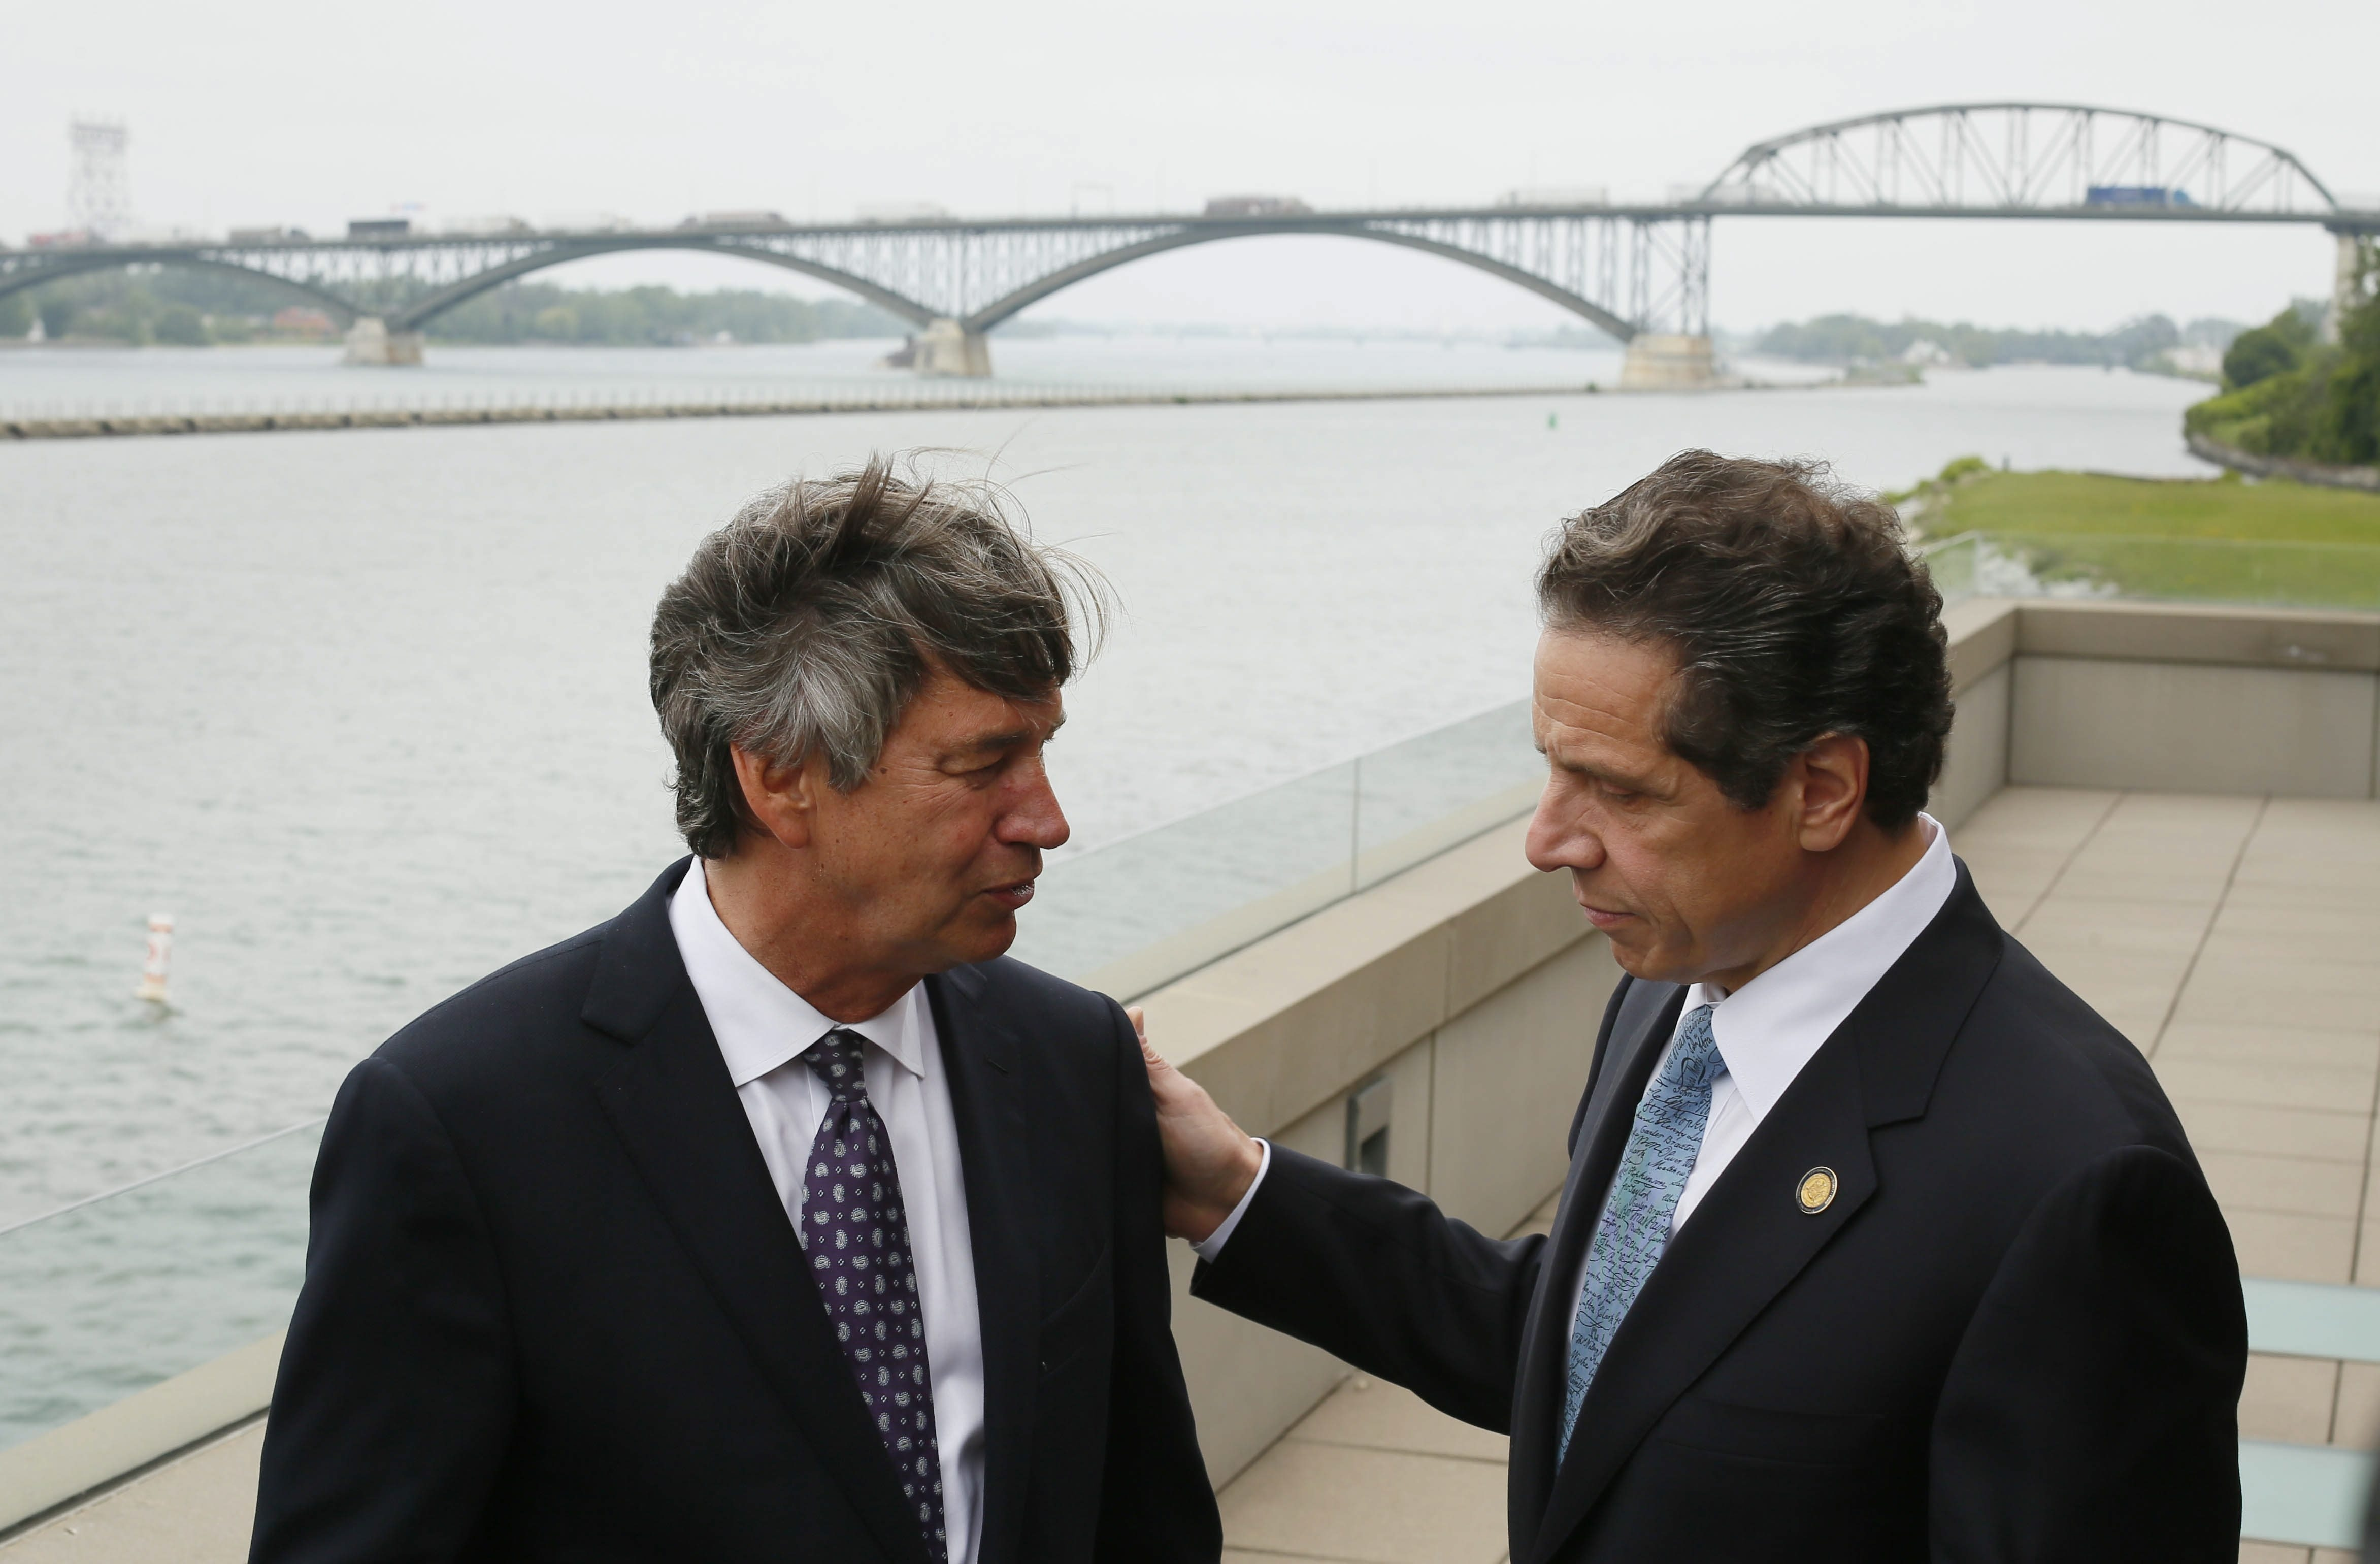 Gov. Andrew Cuomo, right, and Gary Doer, Canadian ambassador to the U.S., announced the agreement on the Peace Bridge Wednesday. (Derek Gee/Buffalo News)